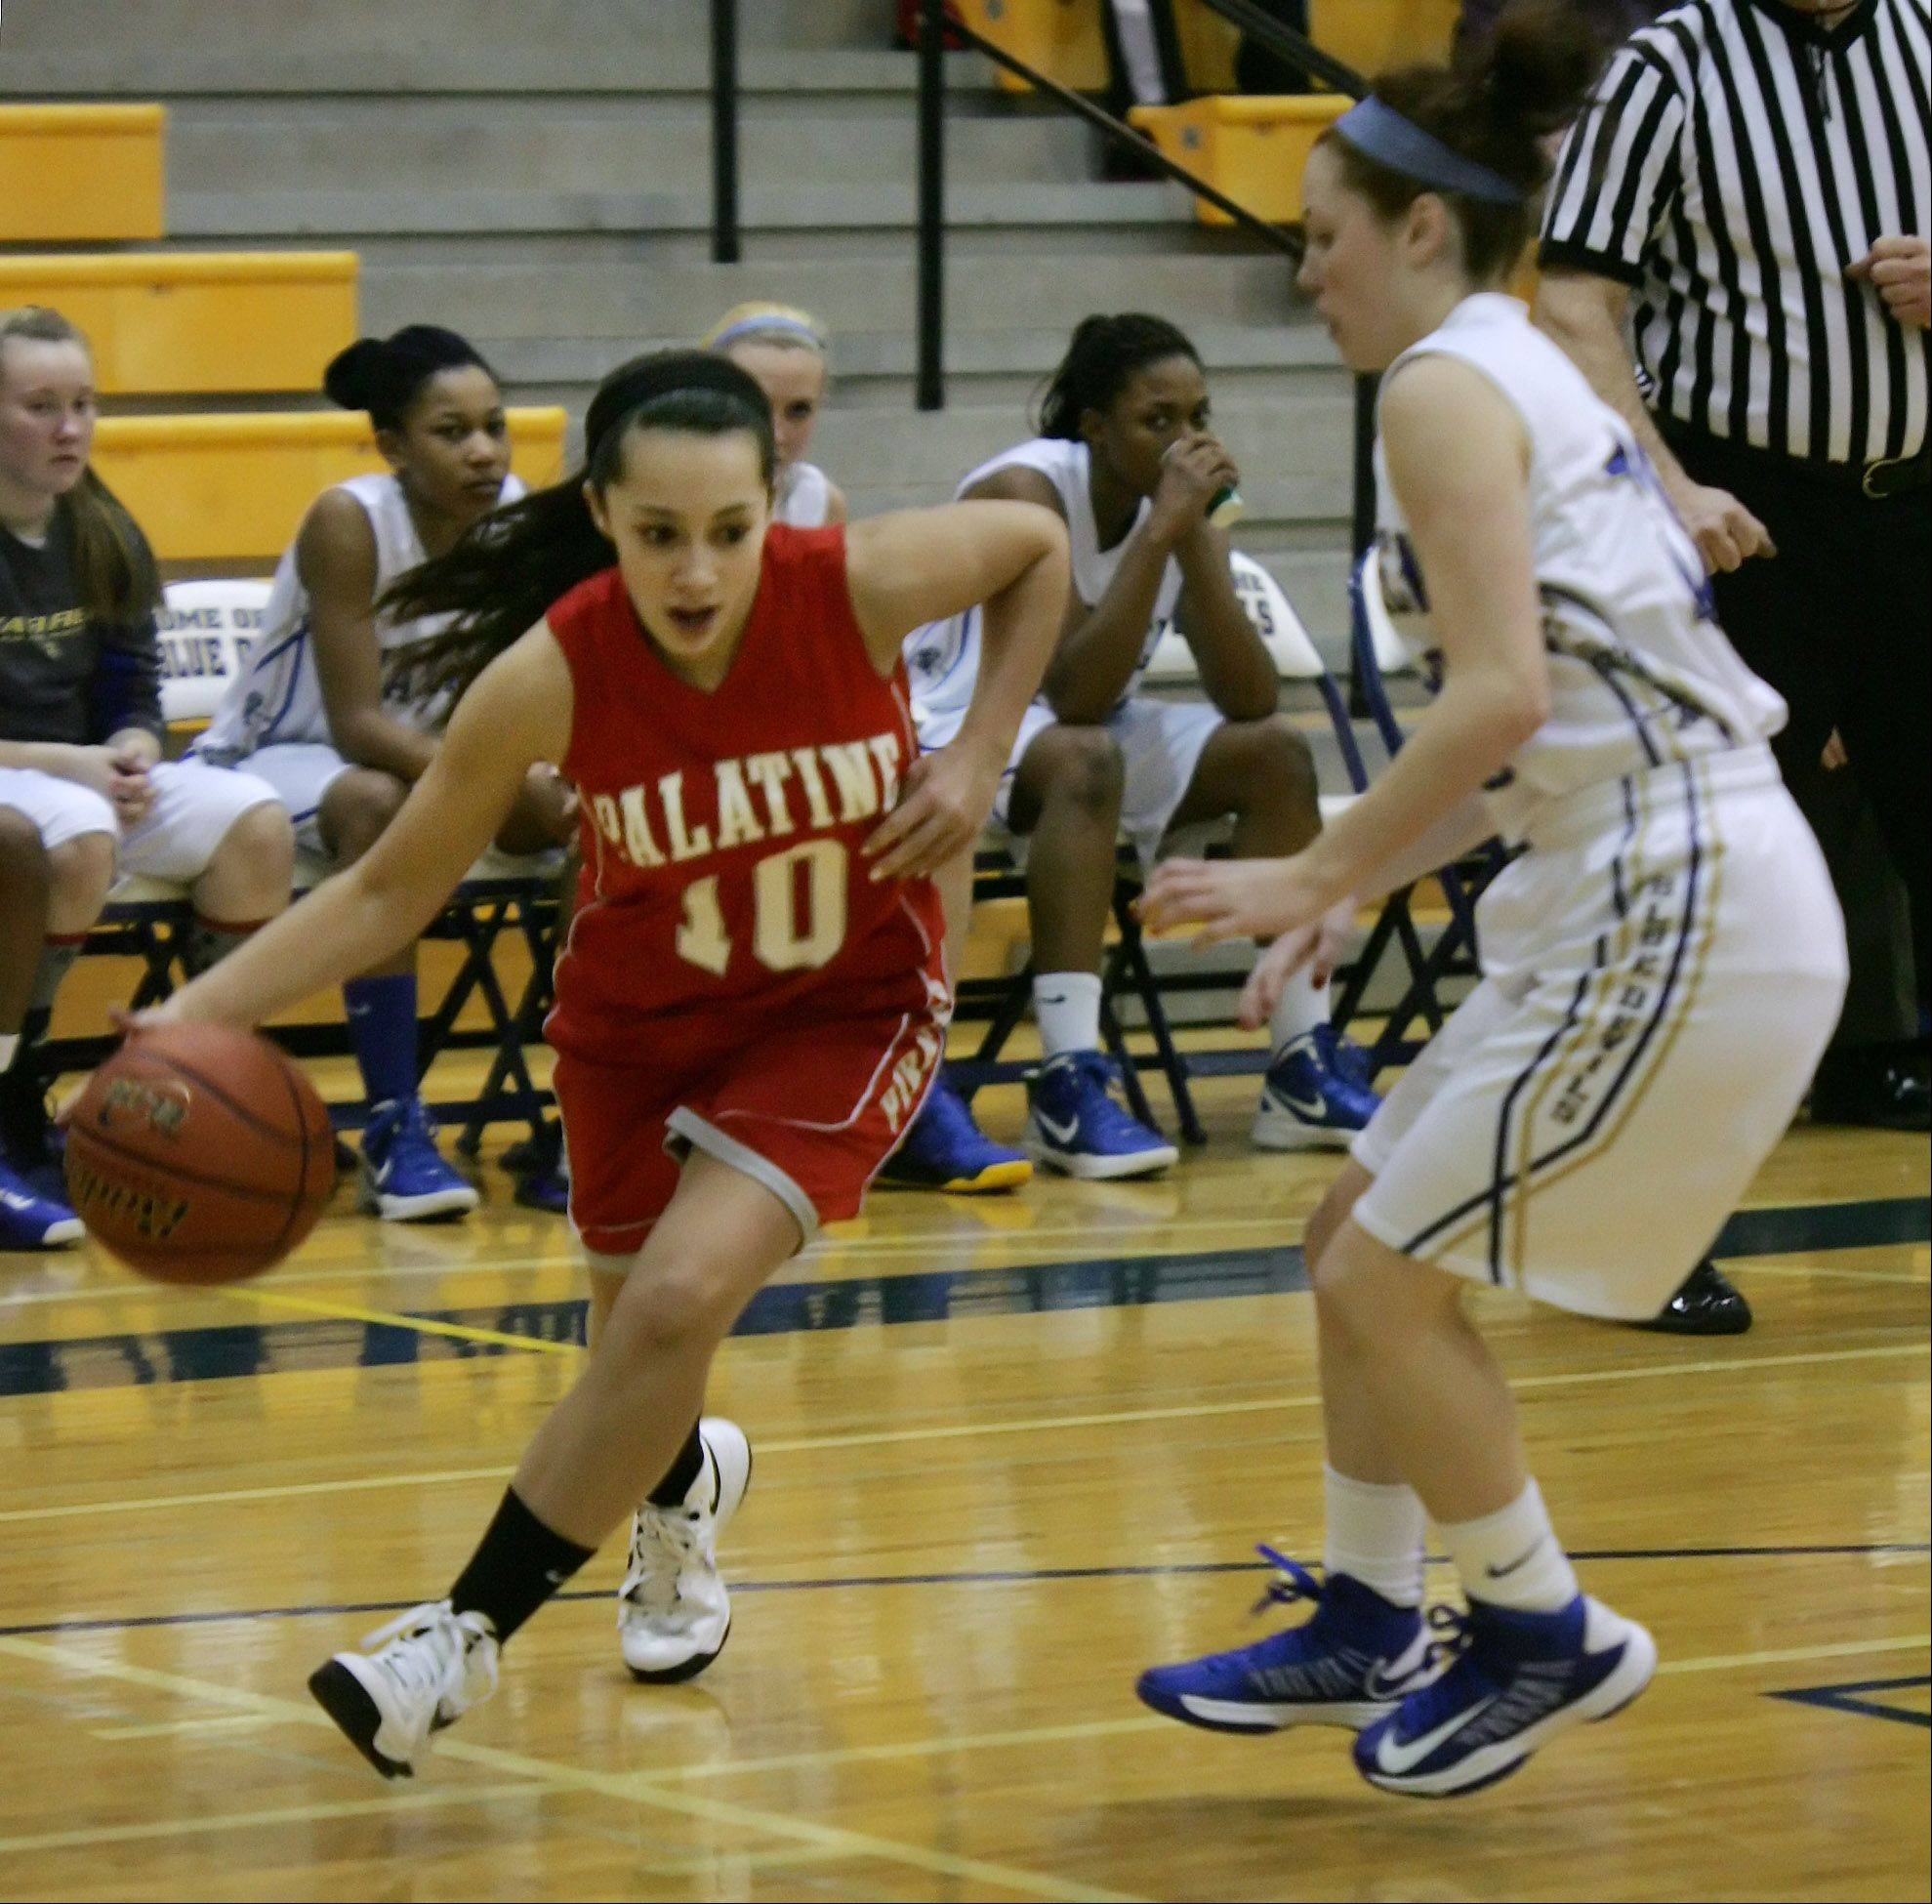 Palatine guard Samantha Heuertz drives to the basket past Warren guard Rachel Brown during the Palatine at Warren girls high school basketball game in the Blue Devil Classic Thursday at Warren High School in Gurnee.